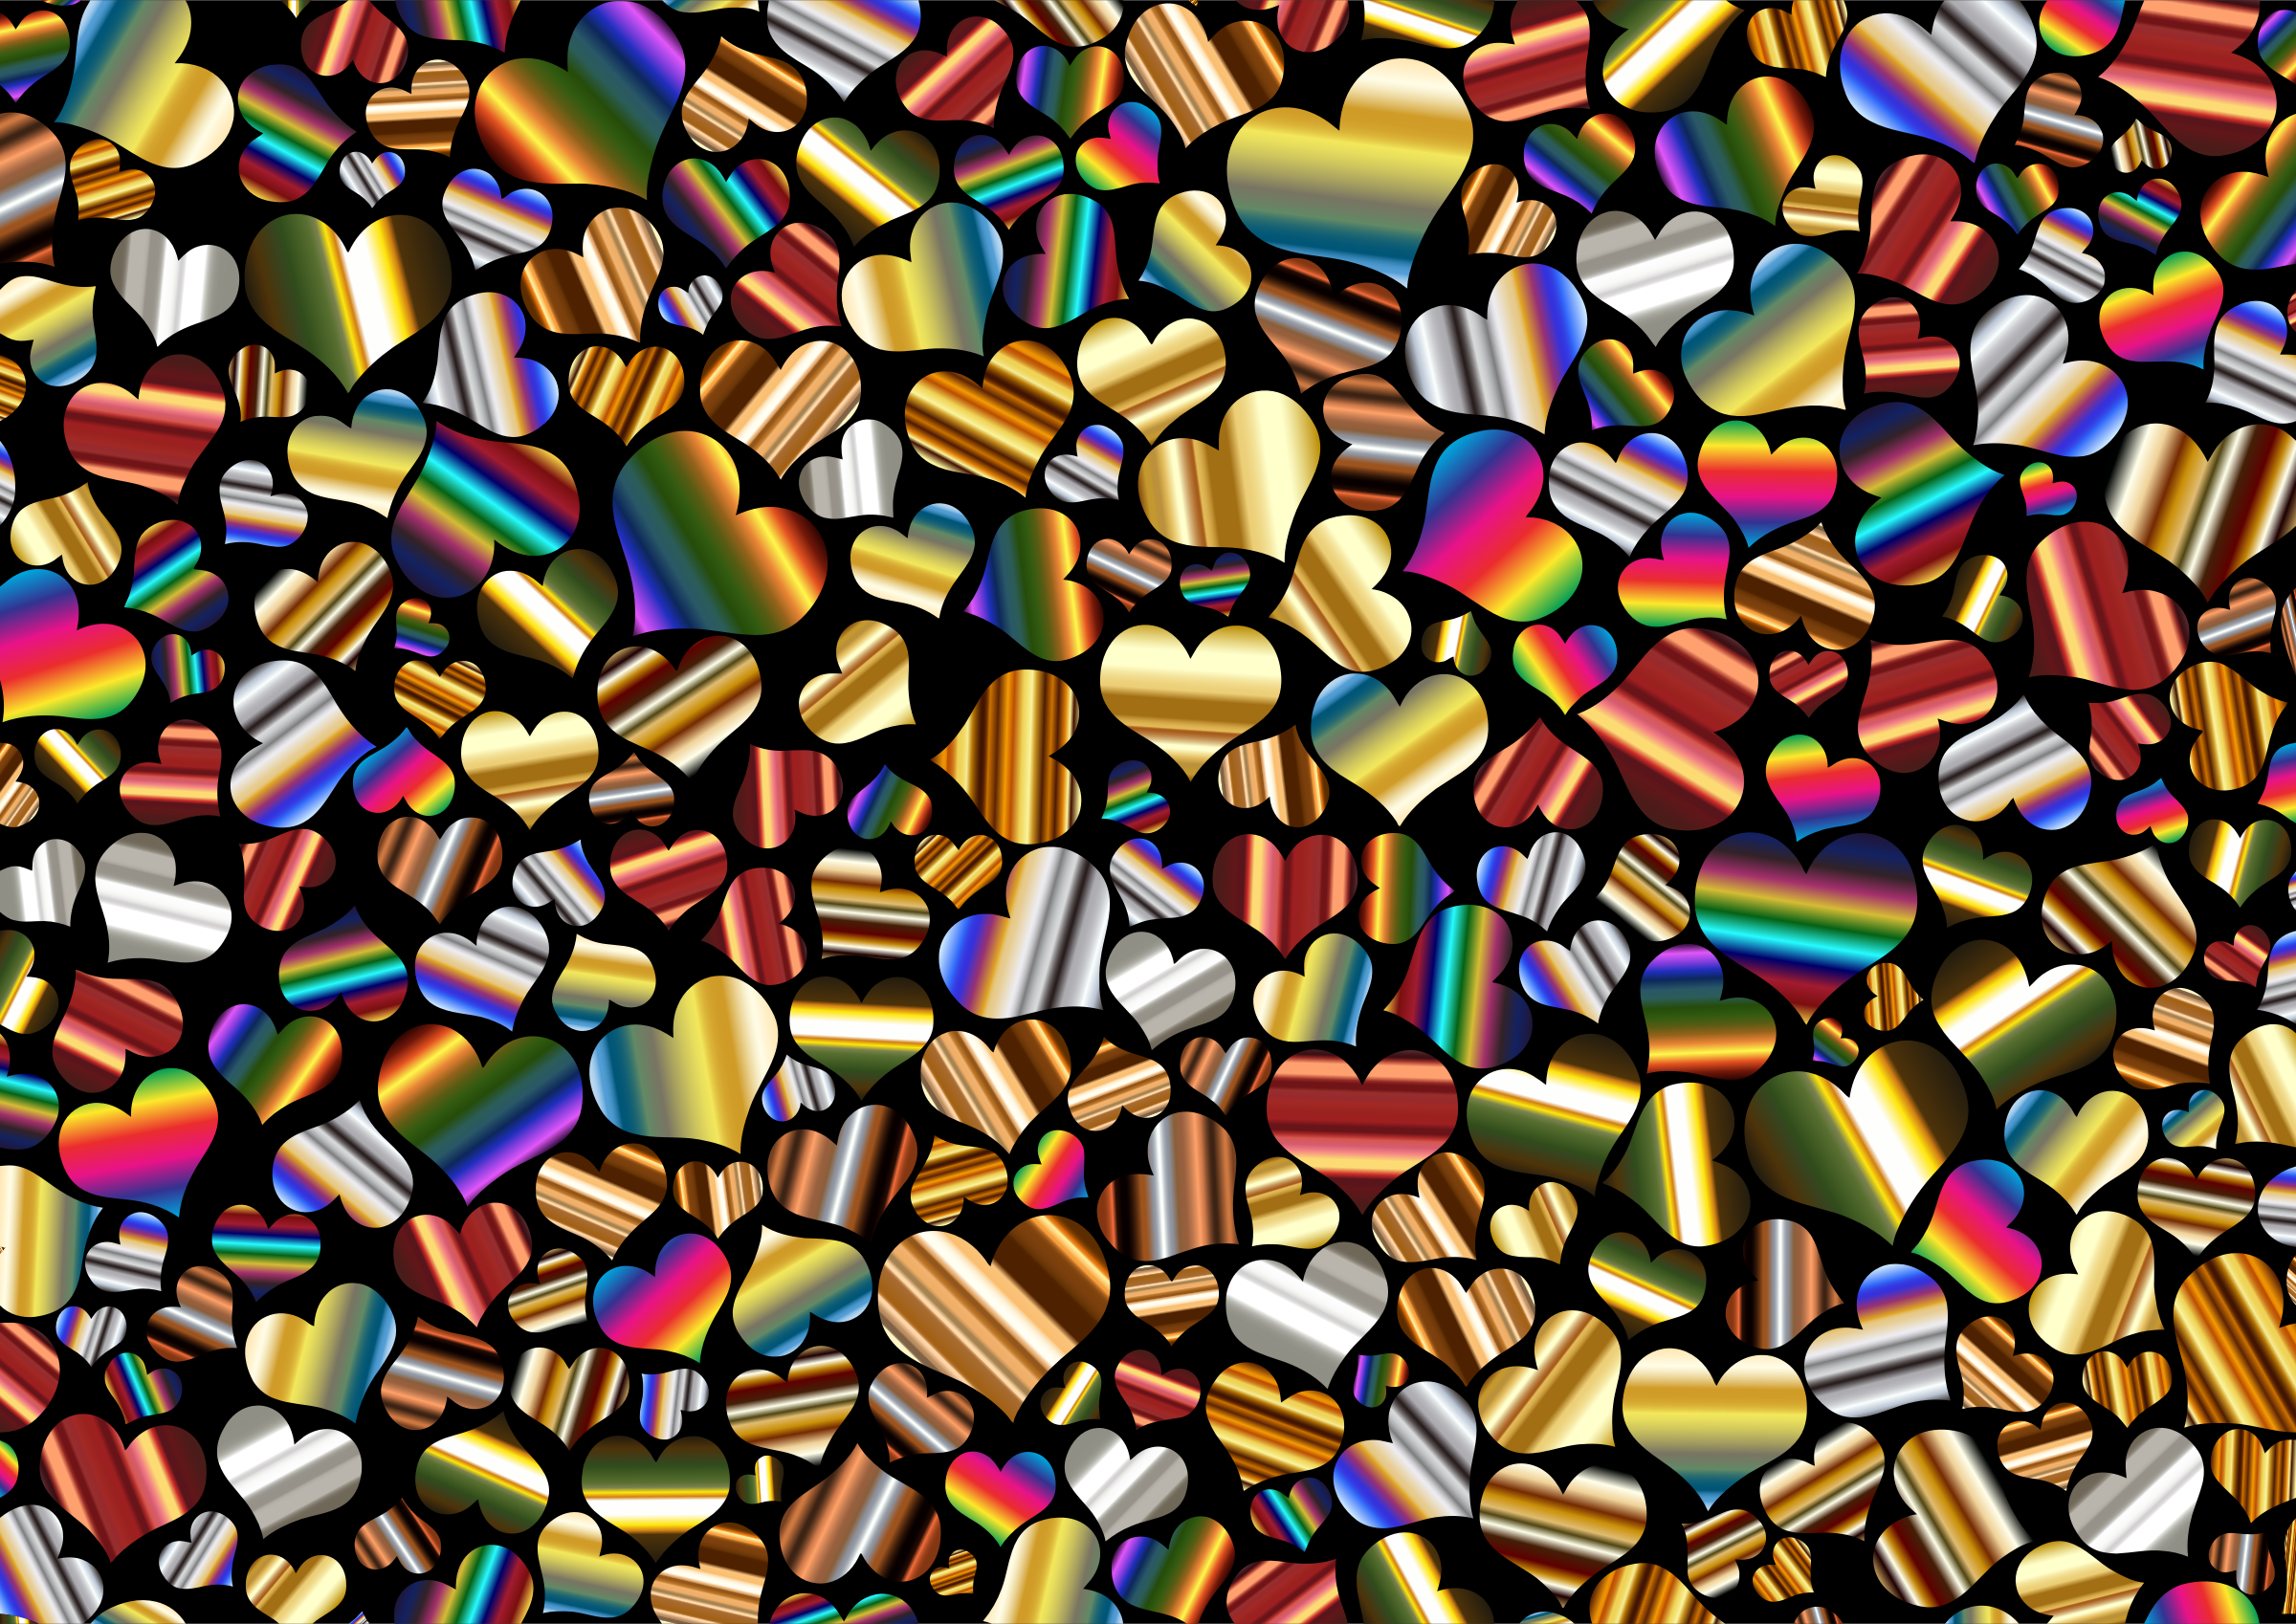 Shiny Metallic Hearts Background 3 by GDJ